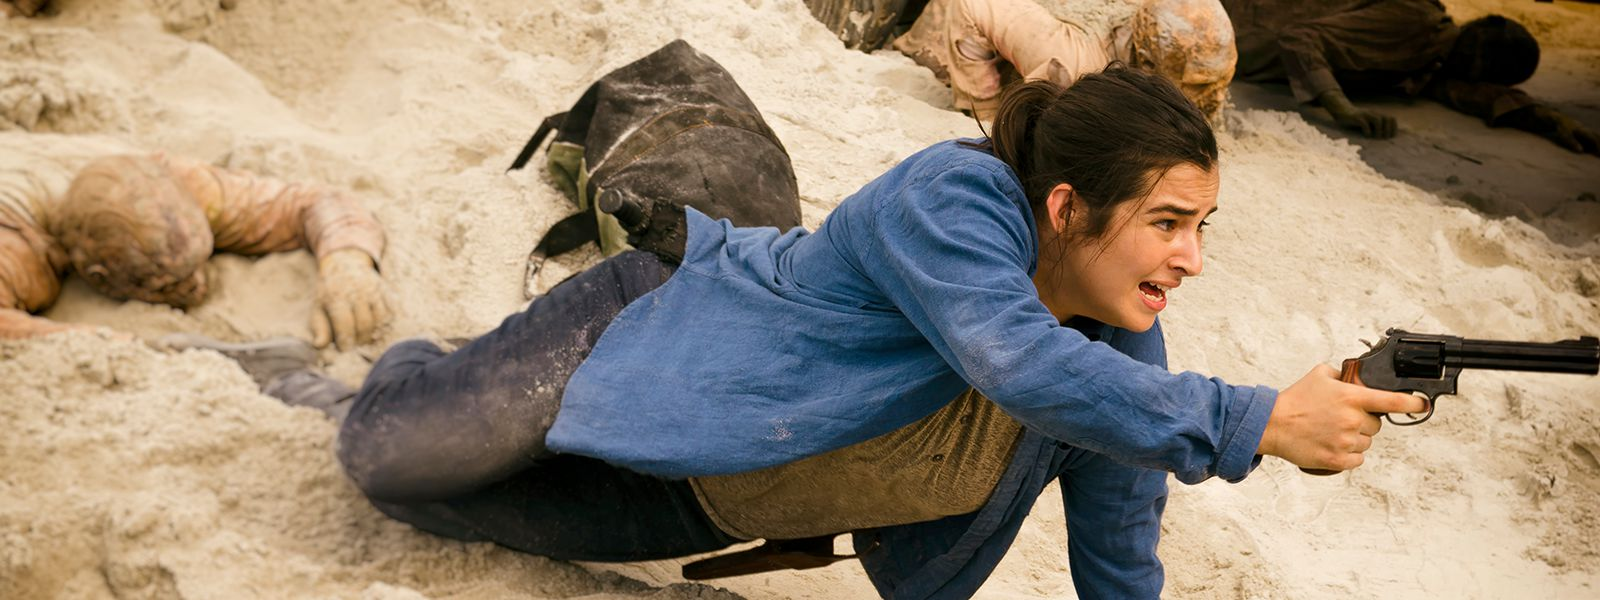 the-walking-dead-episode-706-tara-masterson-post-800×600